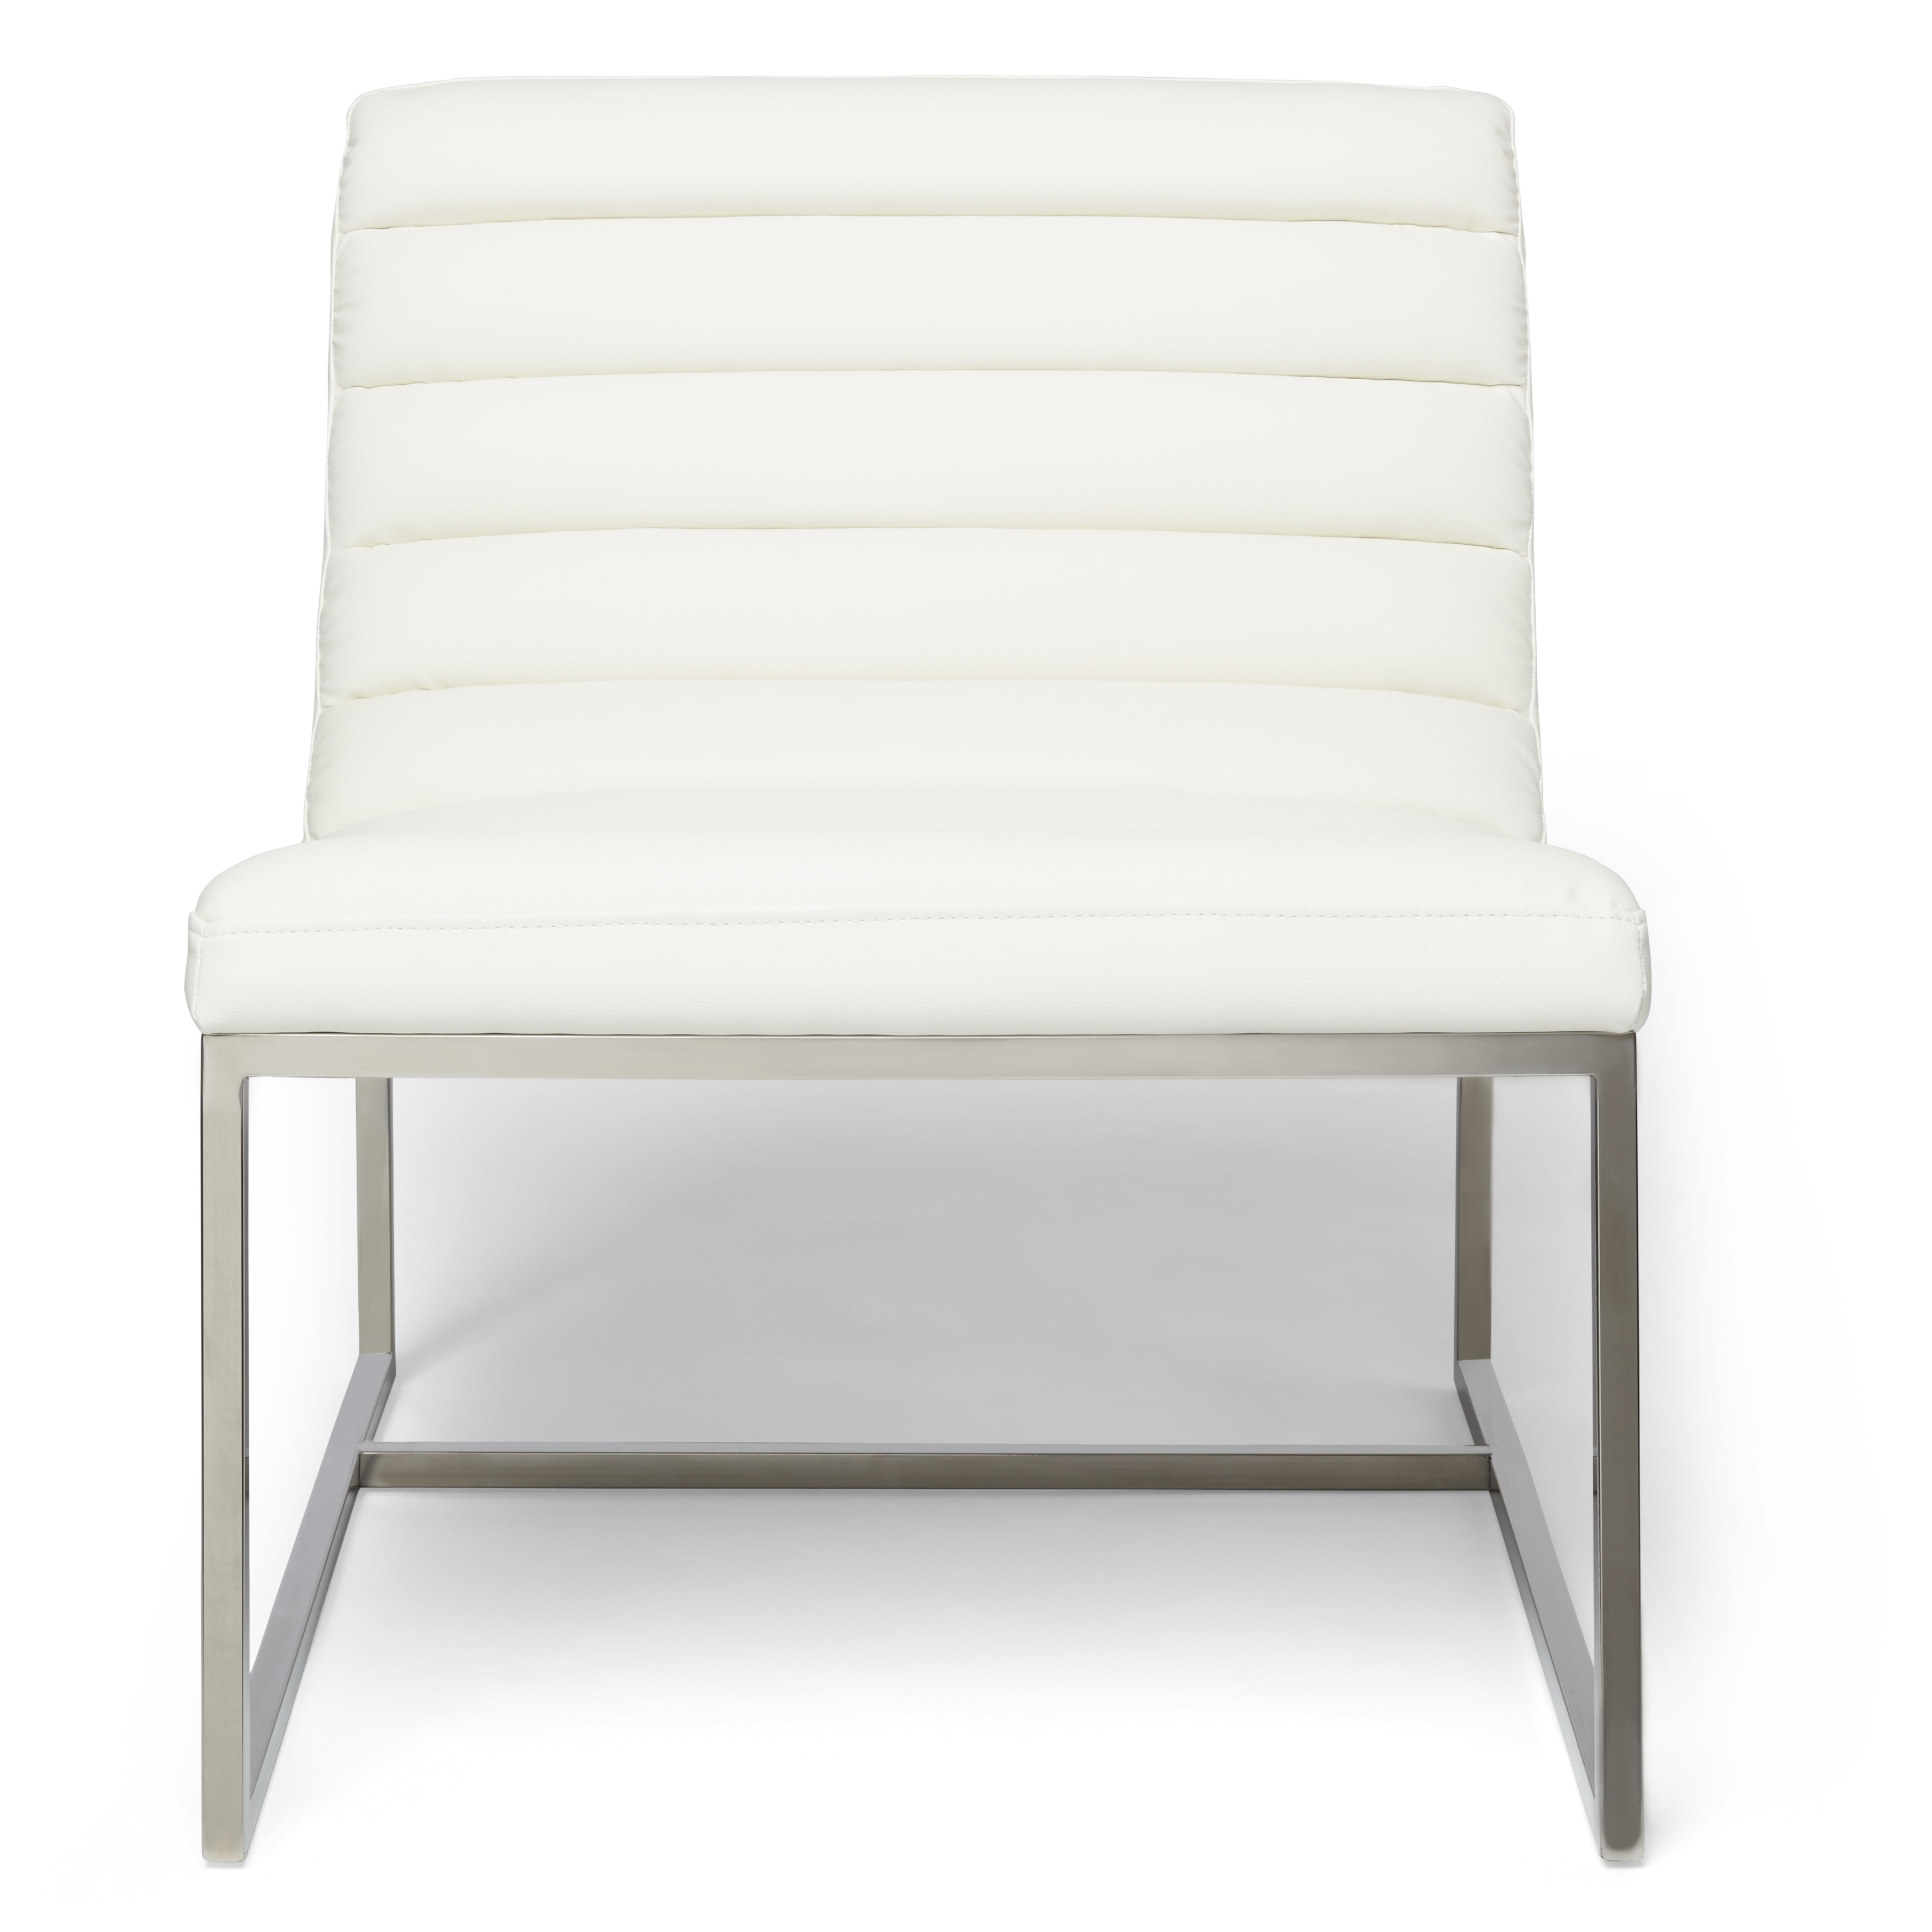 Parisian White Leather Sofa Chair By Christopher Knight Home  ~ Black Leather Sofa Chair